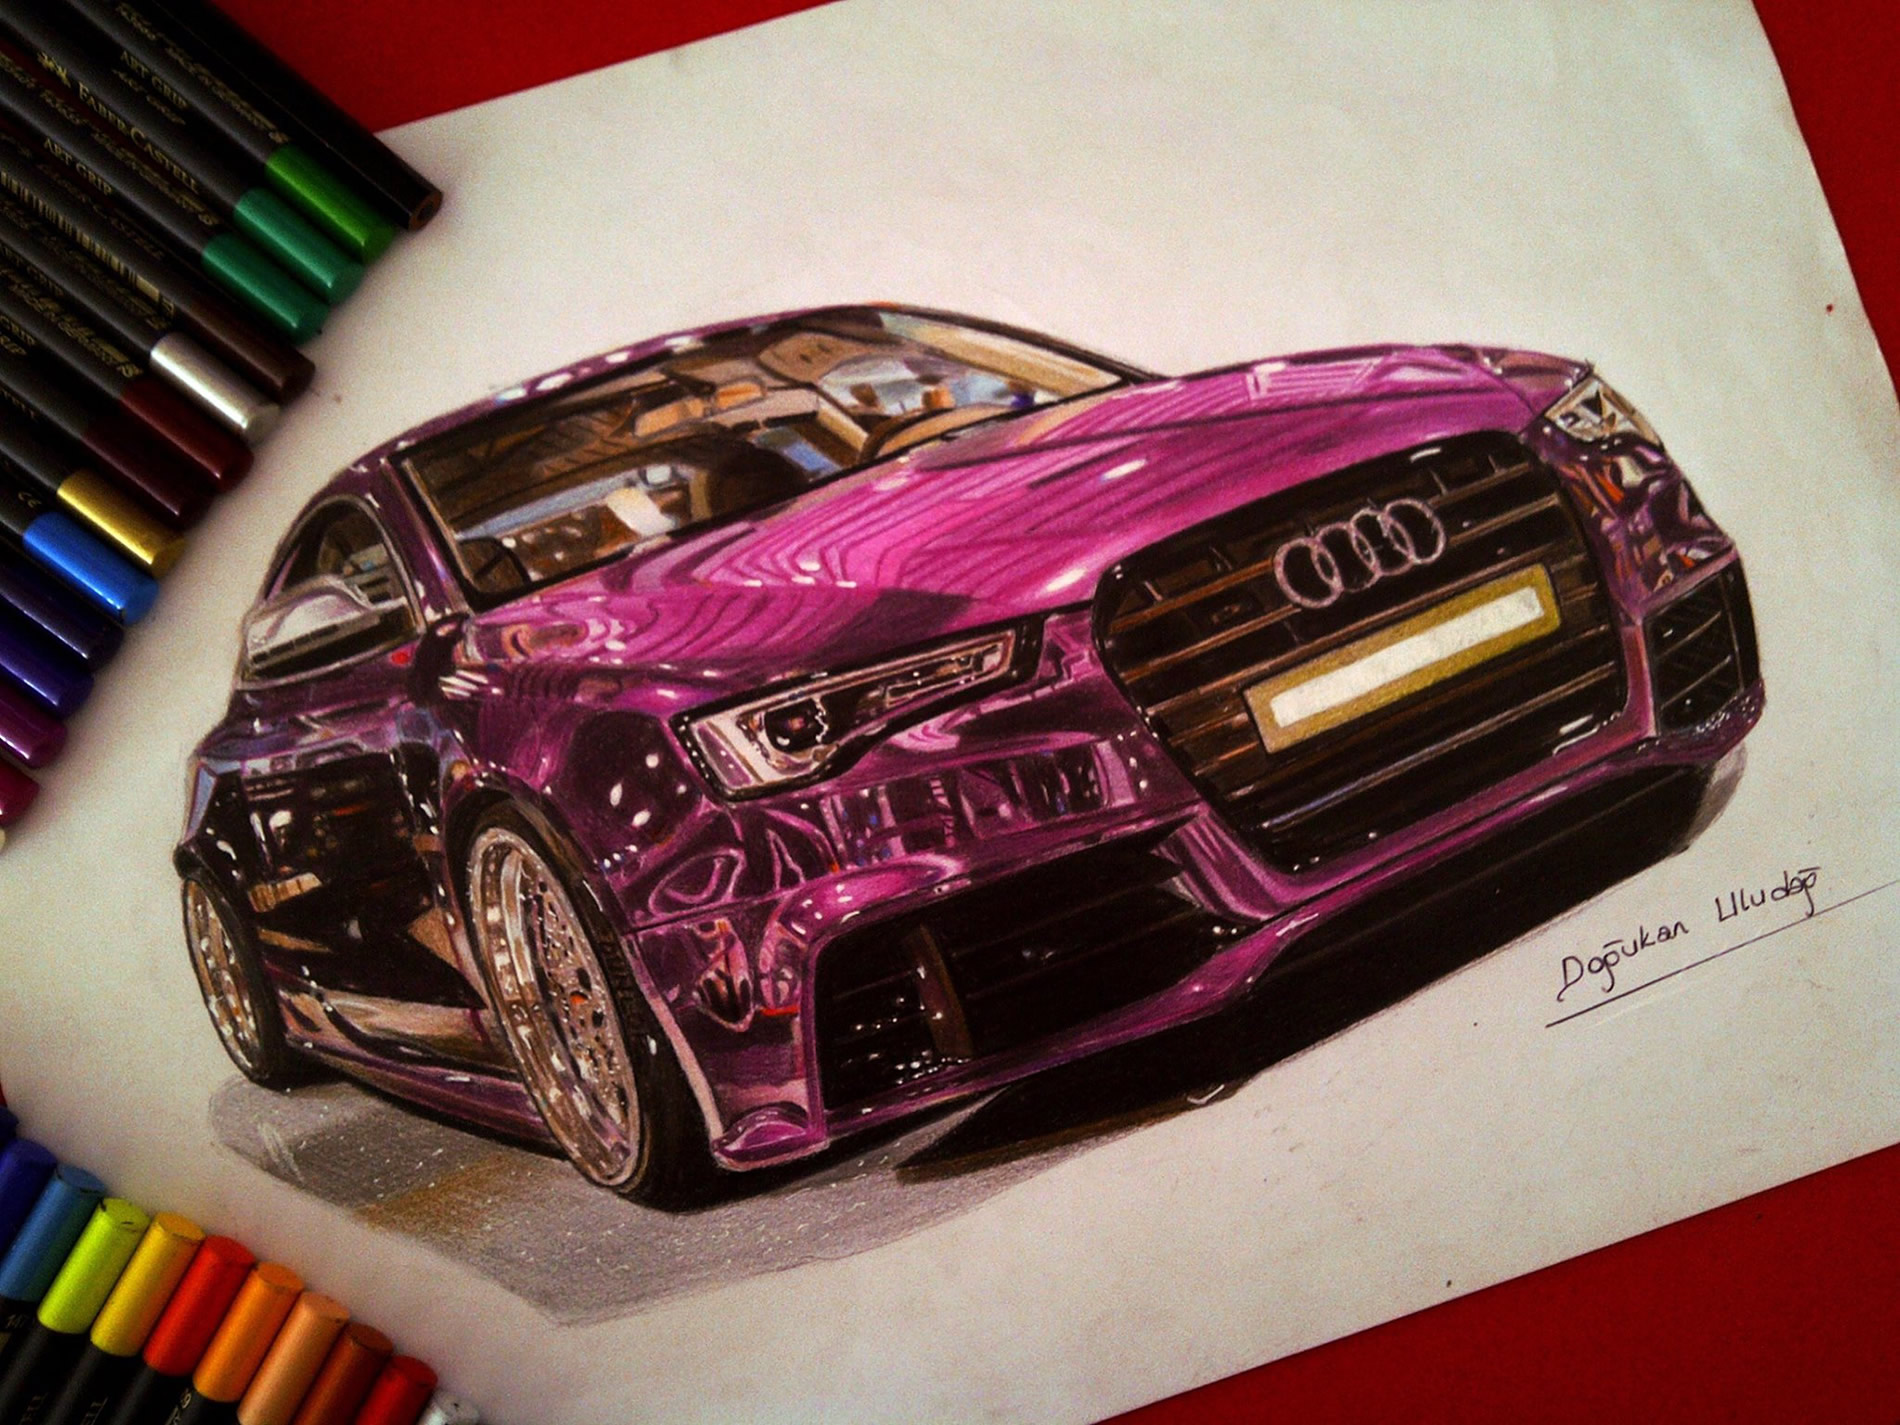 pink-purple audi by ulas and dogukan